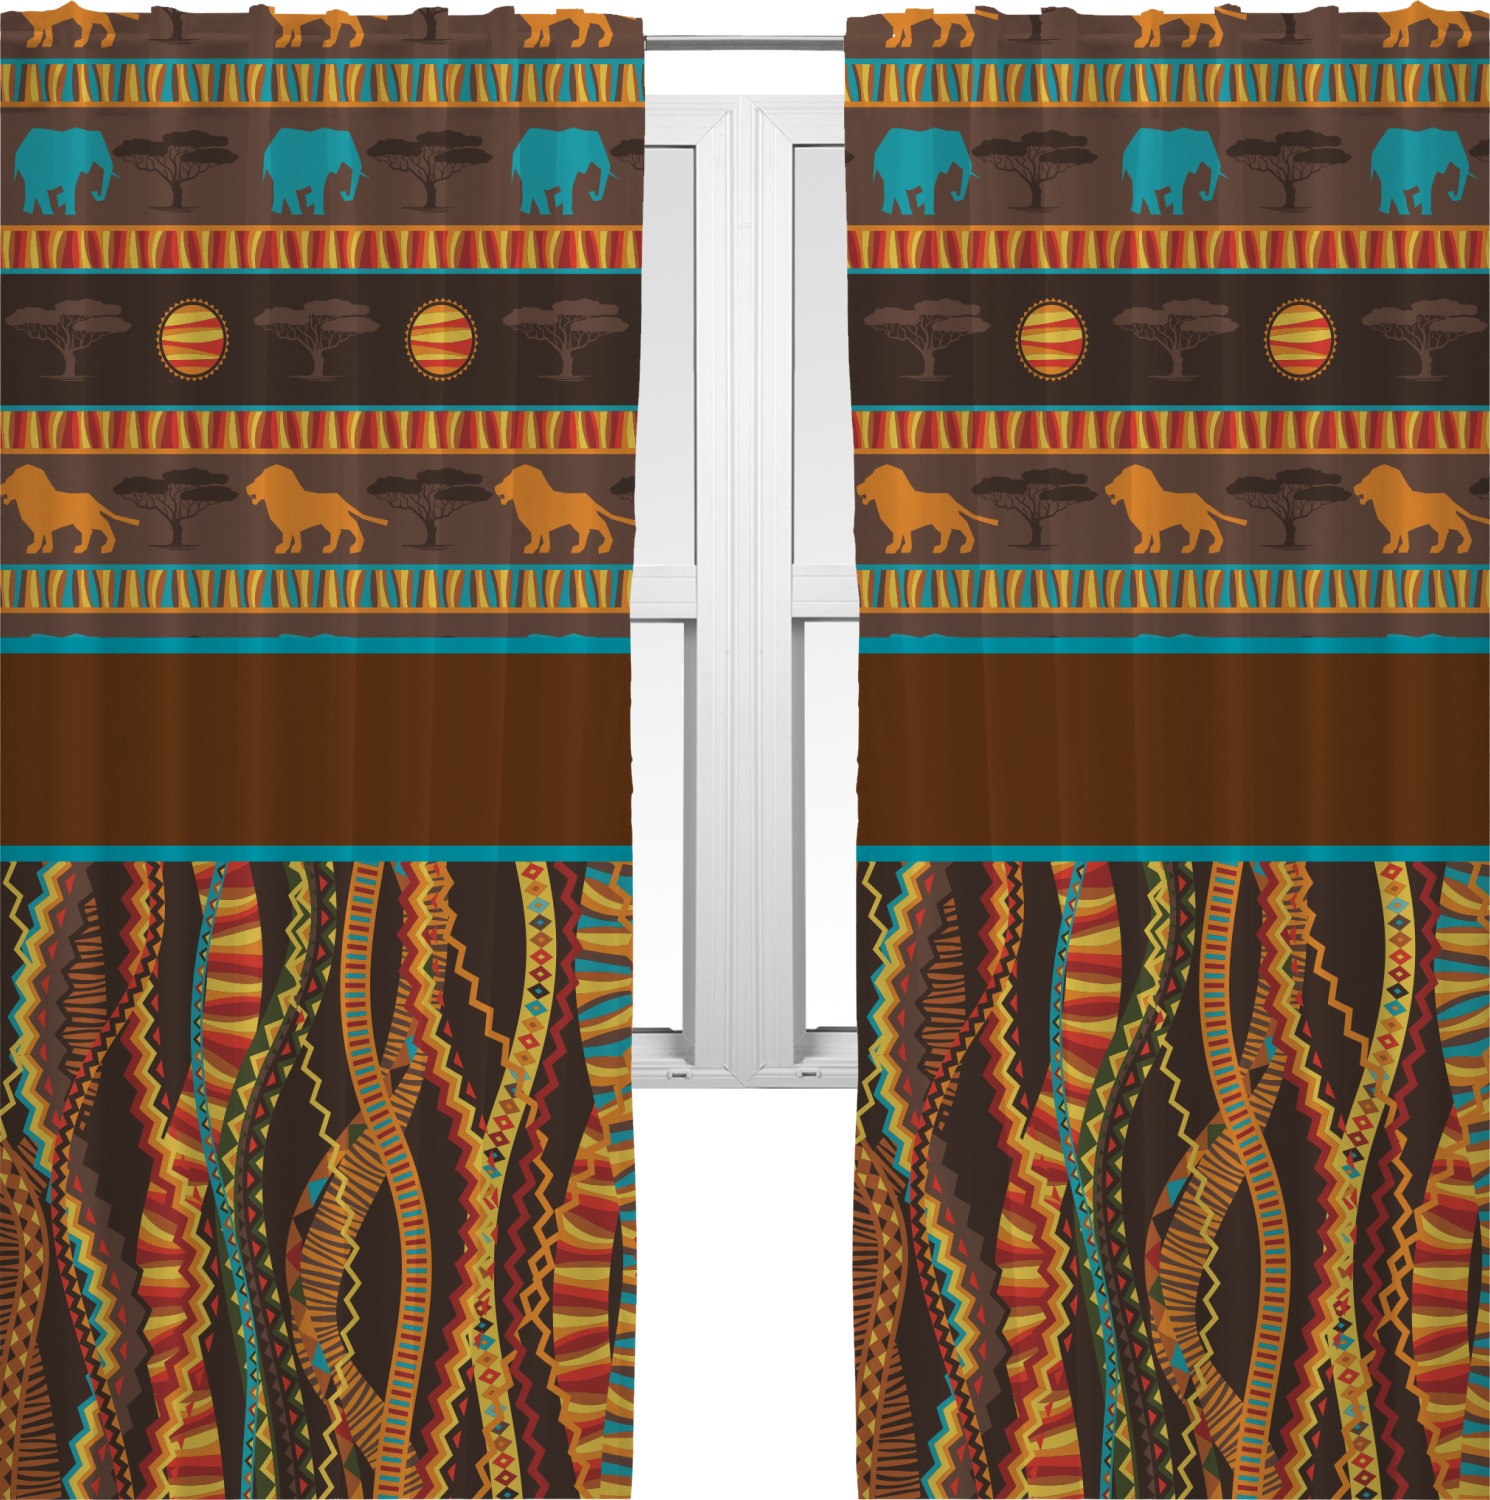 Kitchen Curtain Ideas South Africa: African Lions & Elephants Curtains